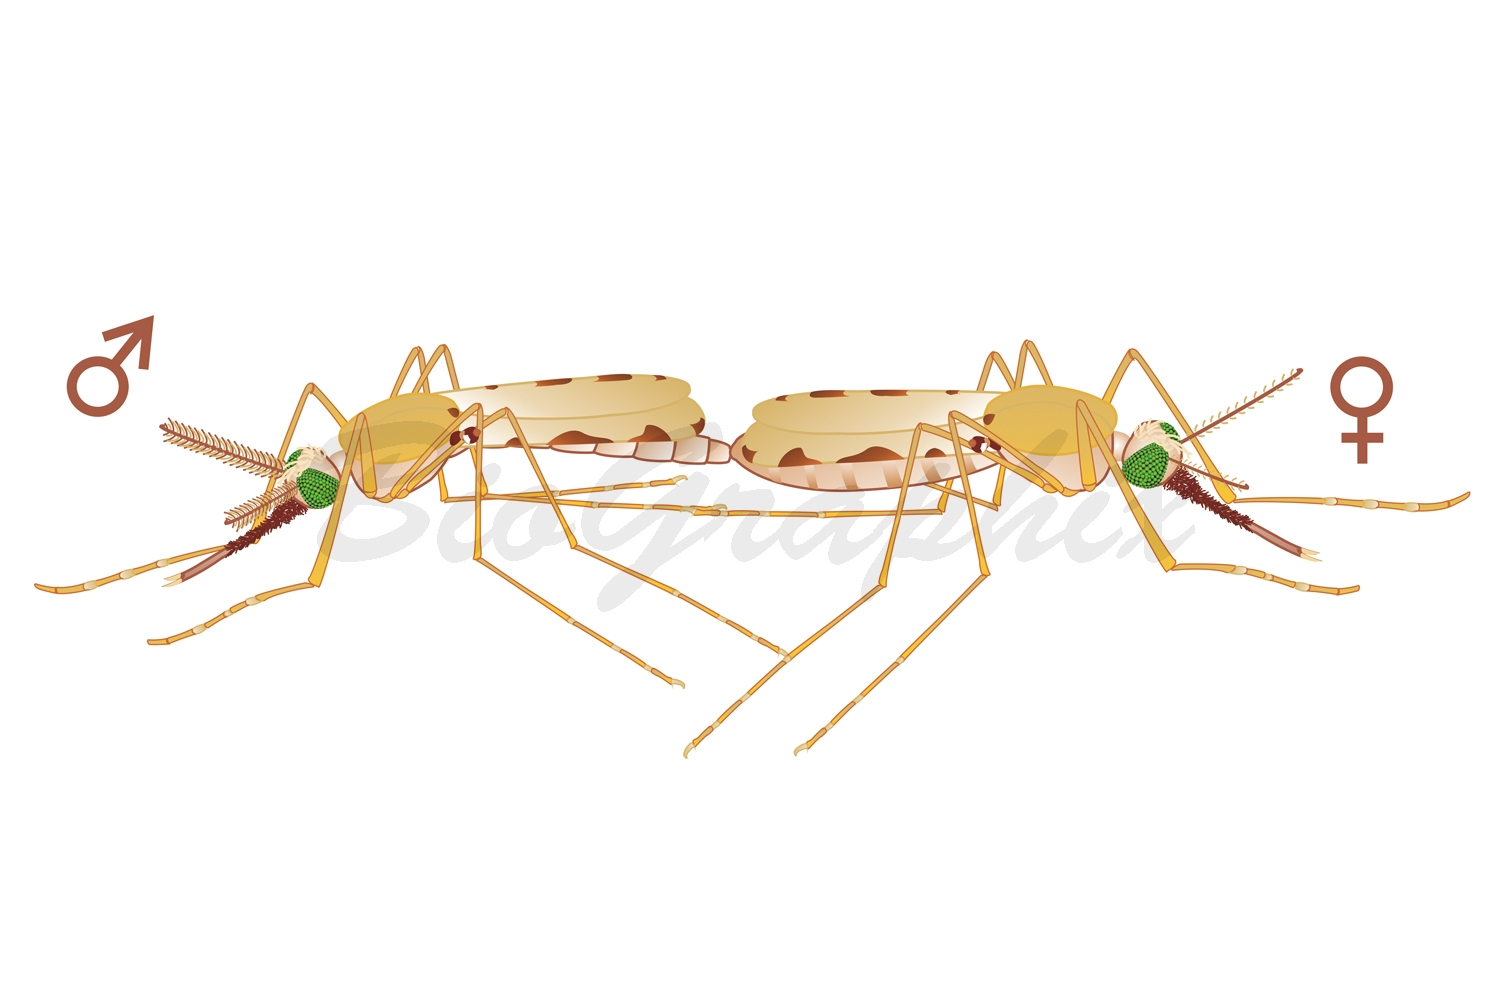 30_Animals_Anopheles_Mating